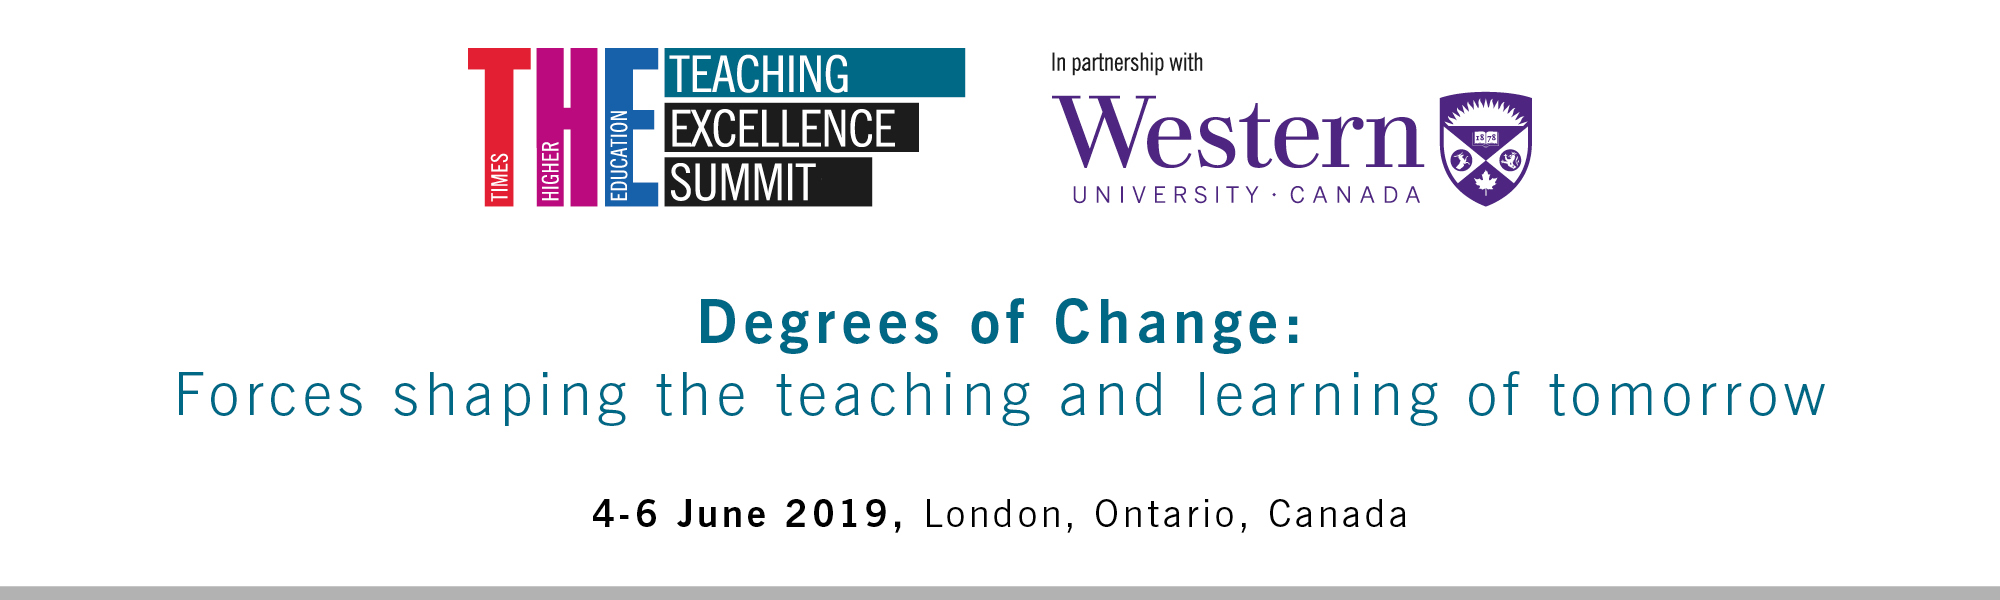 THE Teaching Excellence Summit 2019